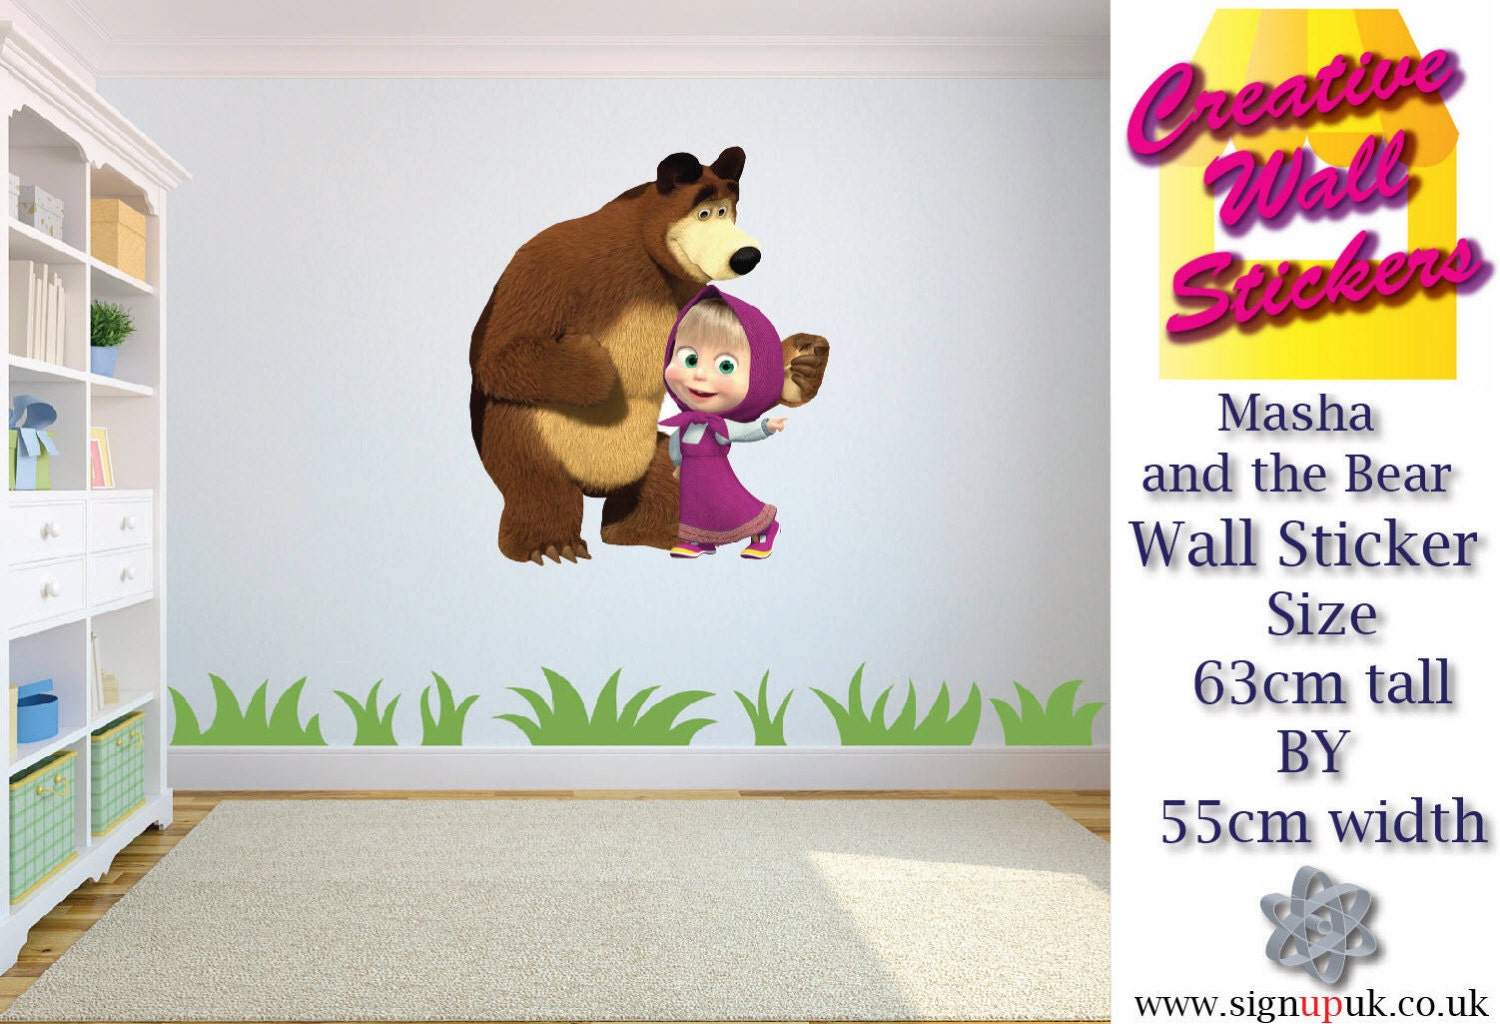 masha and the bear wall sticker childrens bedroom wall decal jungle monkey children s wall sticker set by oakdene